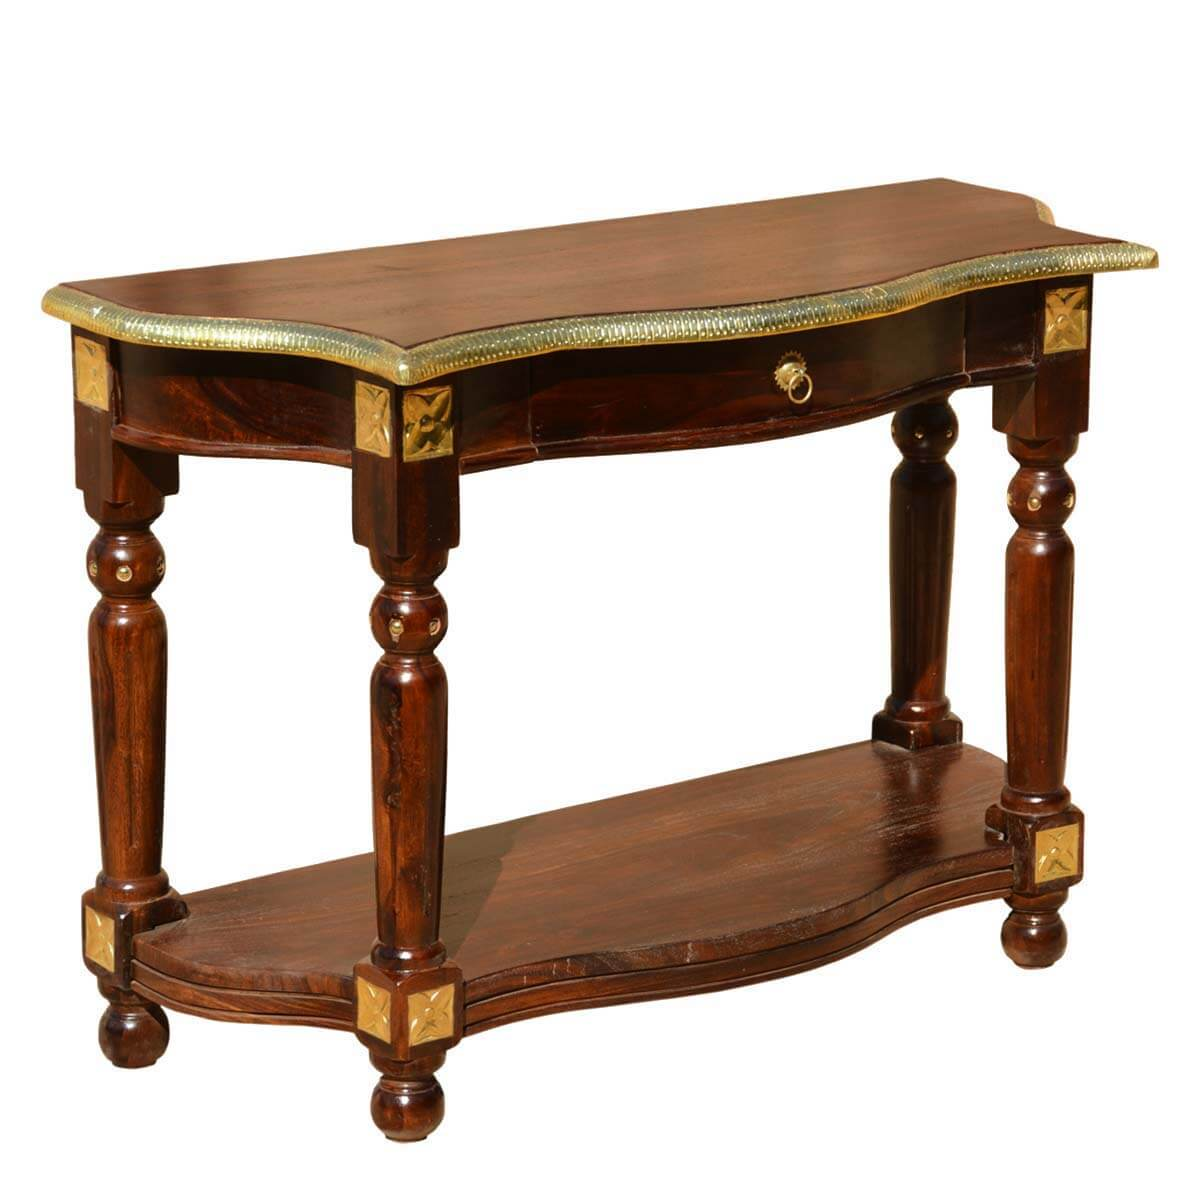 Foyer Console : Solid wood brass strip work console foyer hall table